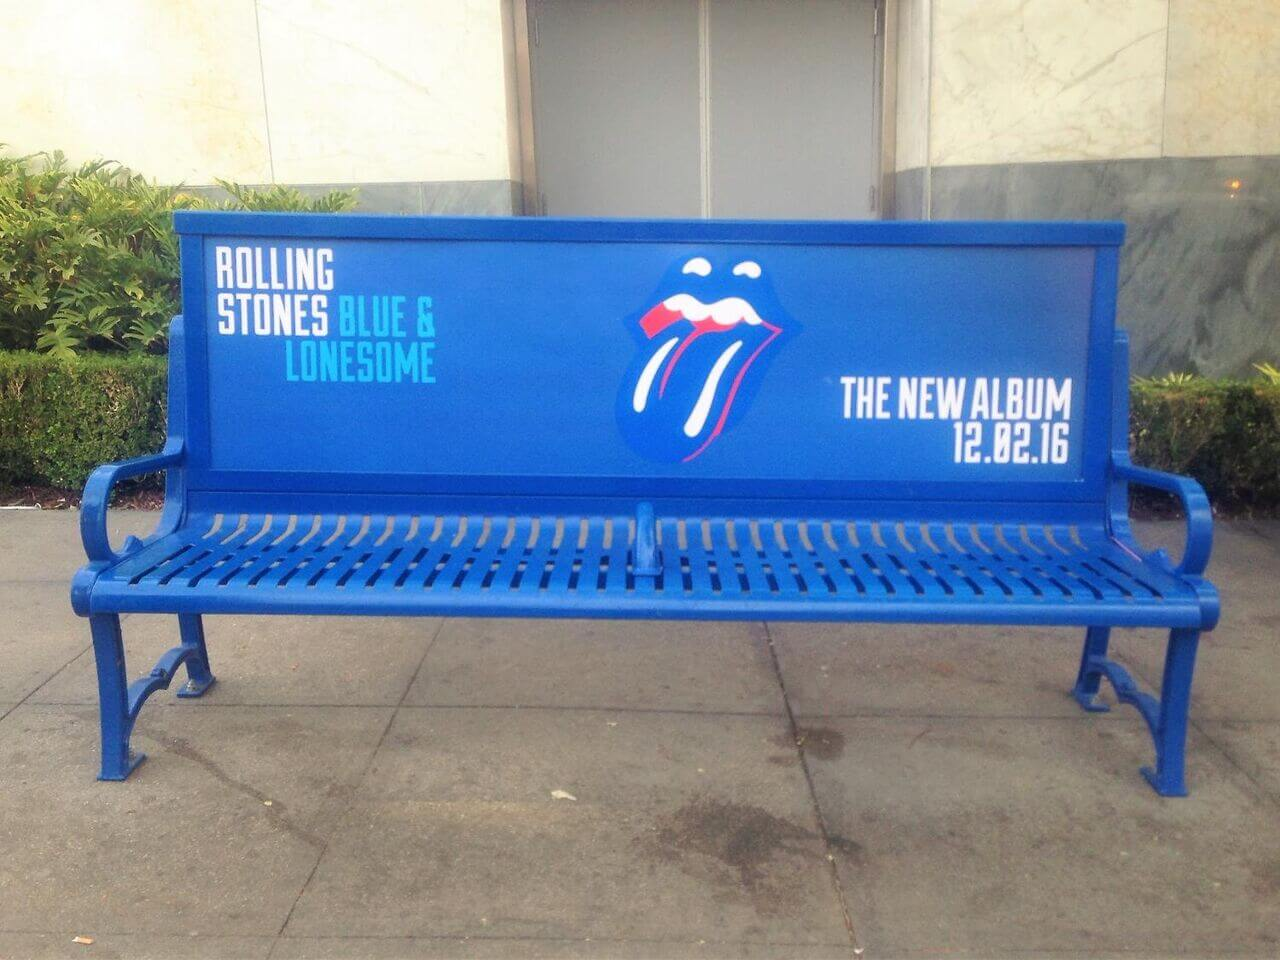 The Rolling Stones Bus Bench Ad